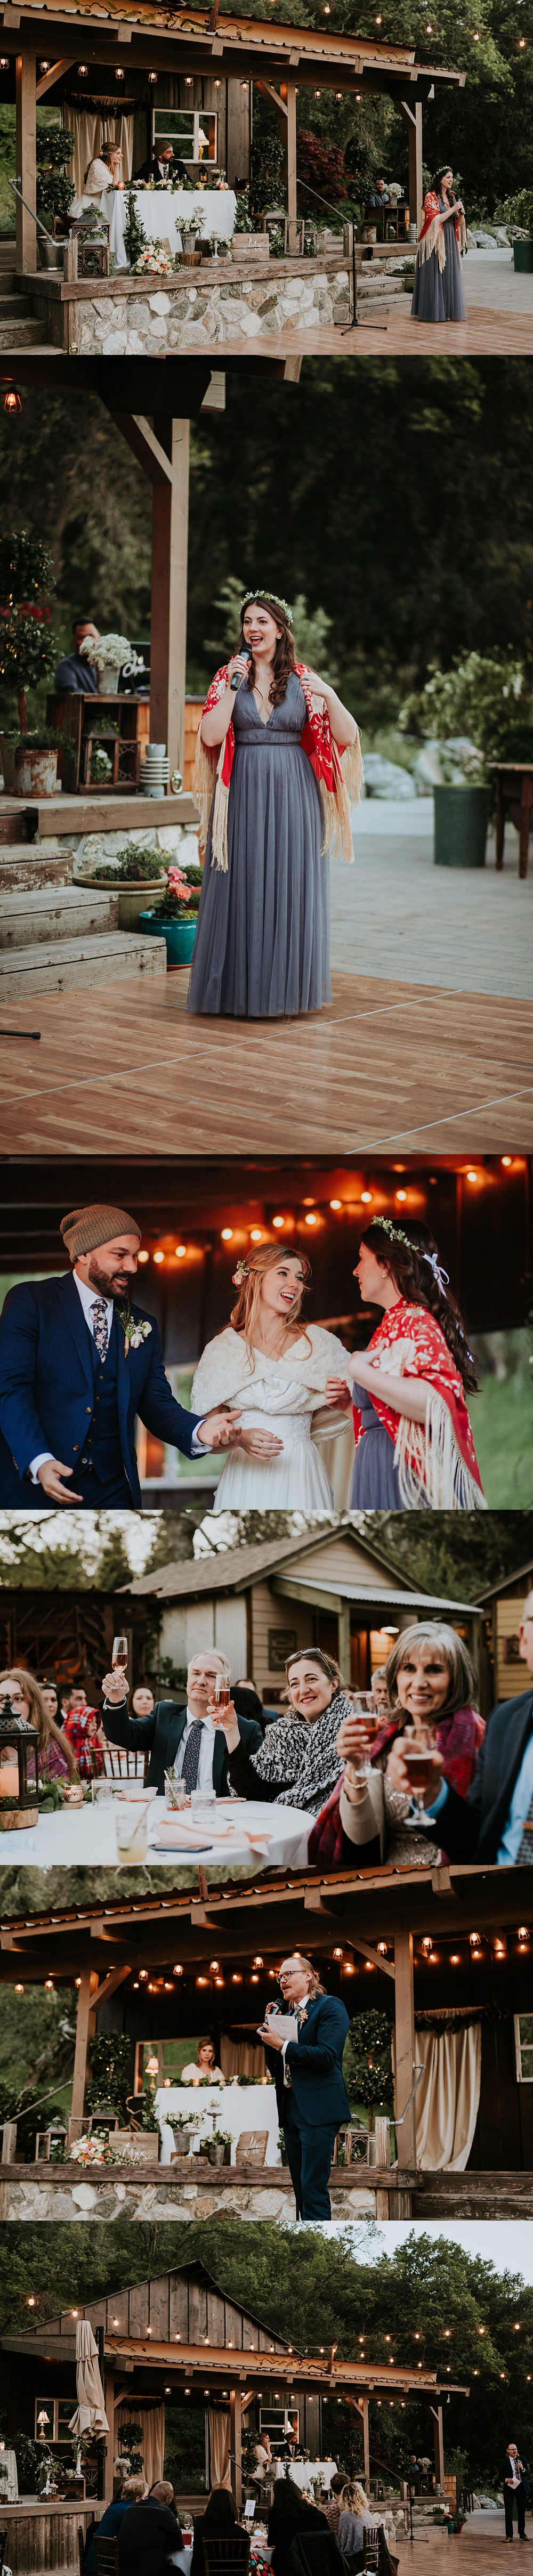 Wedding photographer Los Angeles Oak Glen The Homestead California